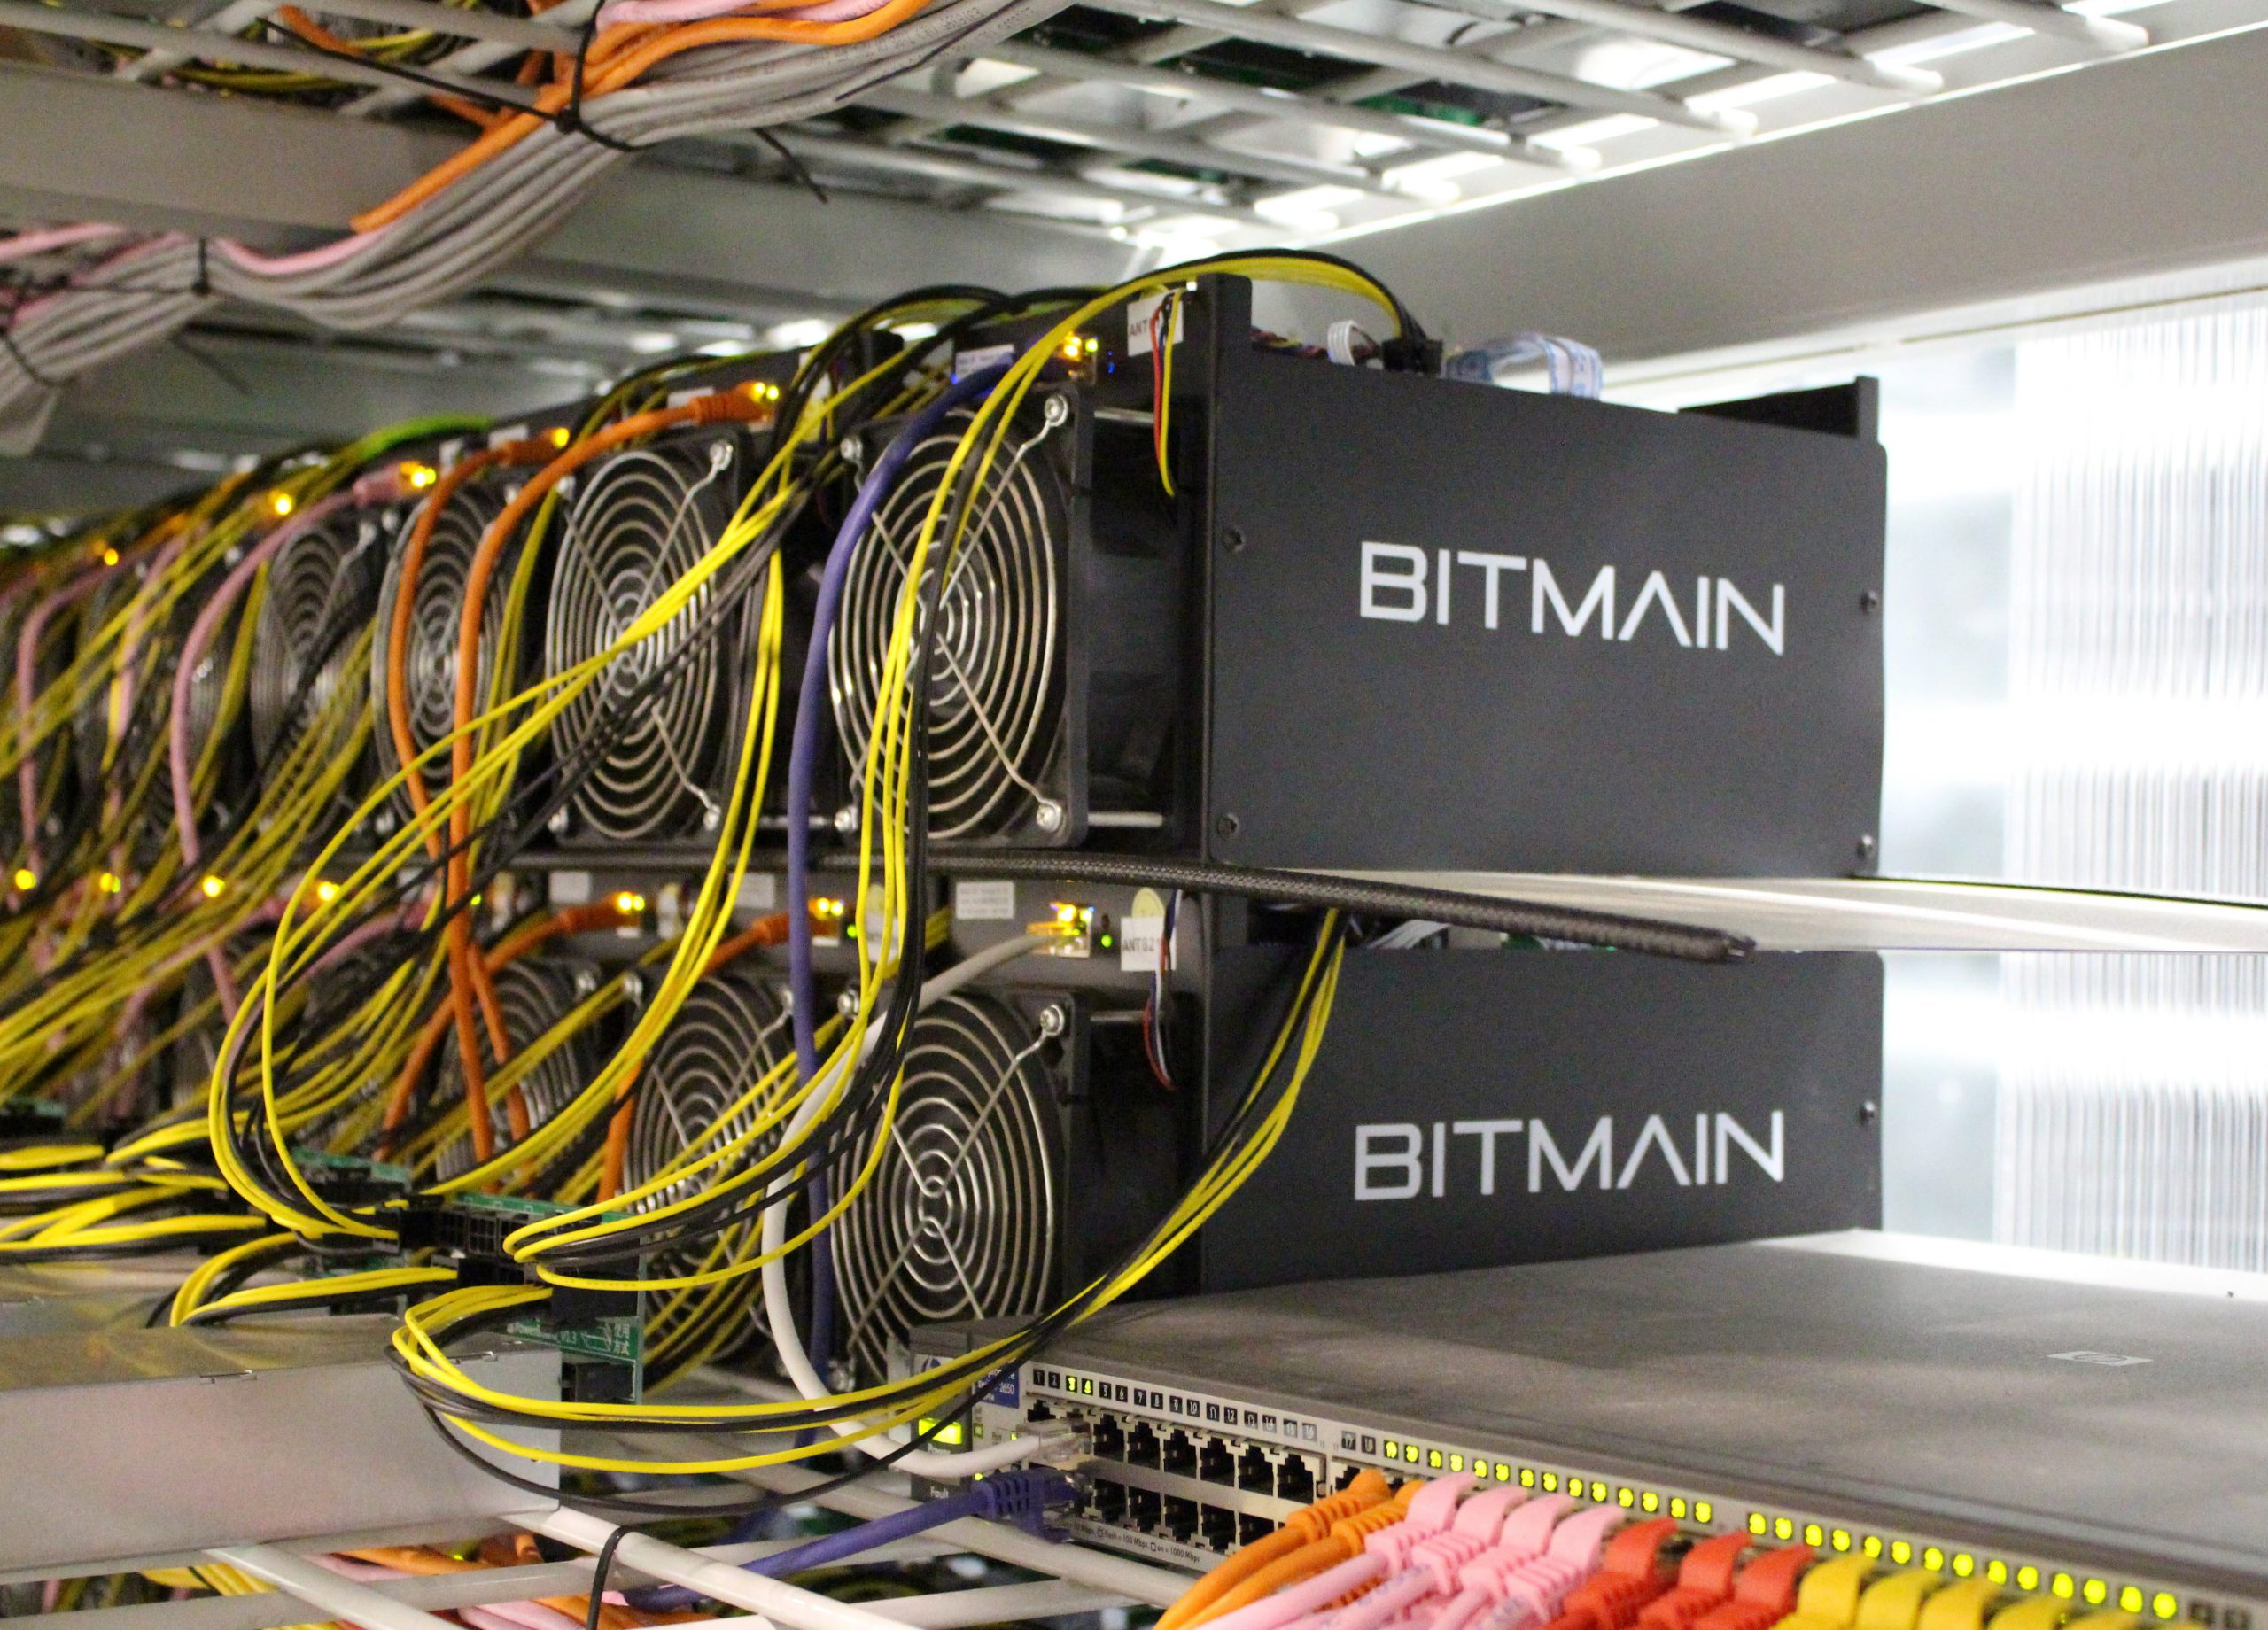 Bitmain has sold off Antminer dd